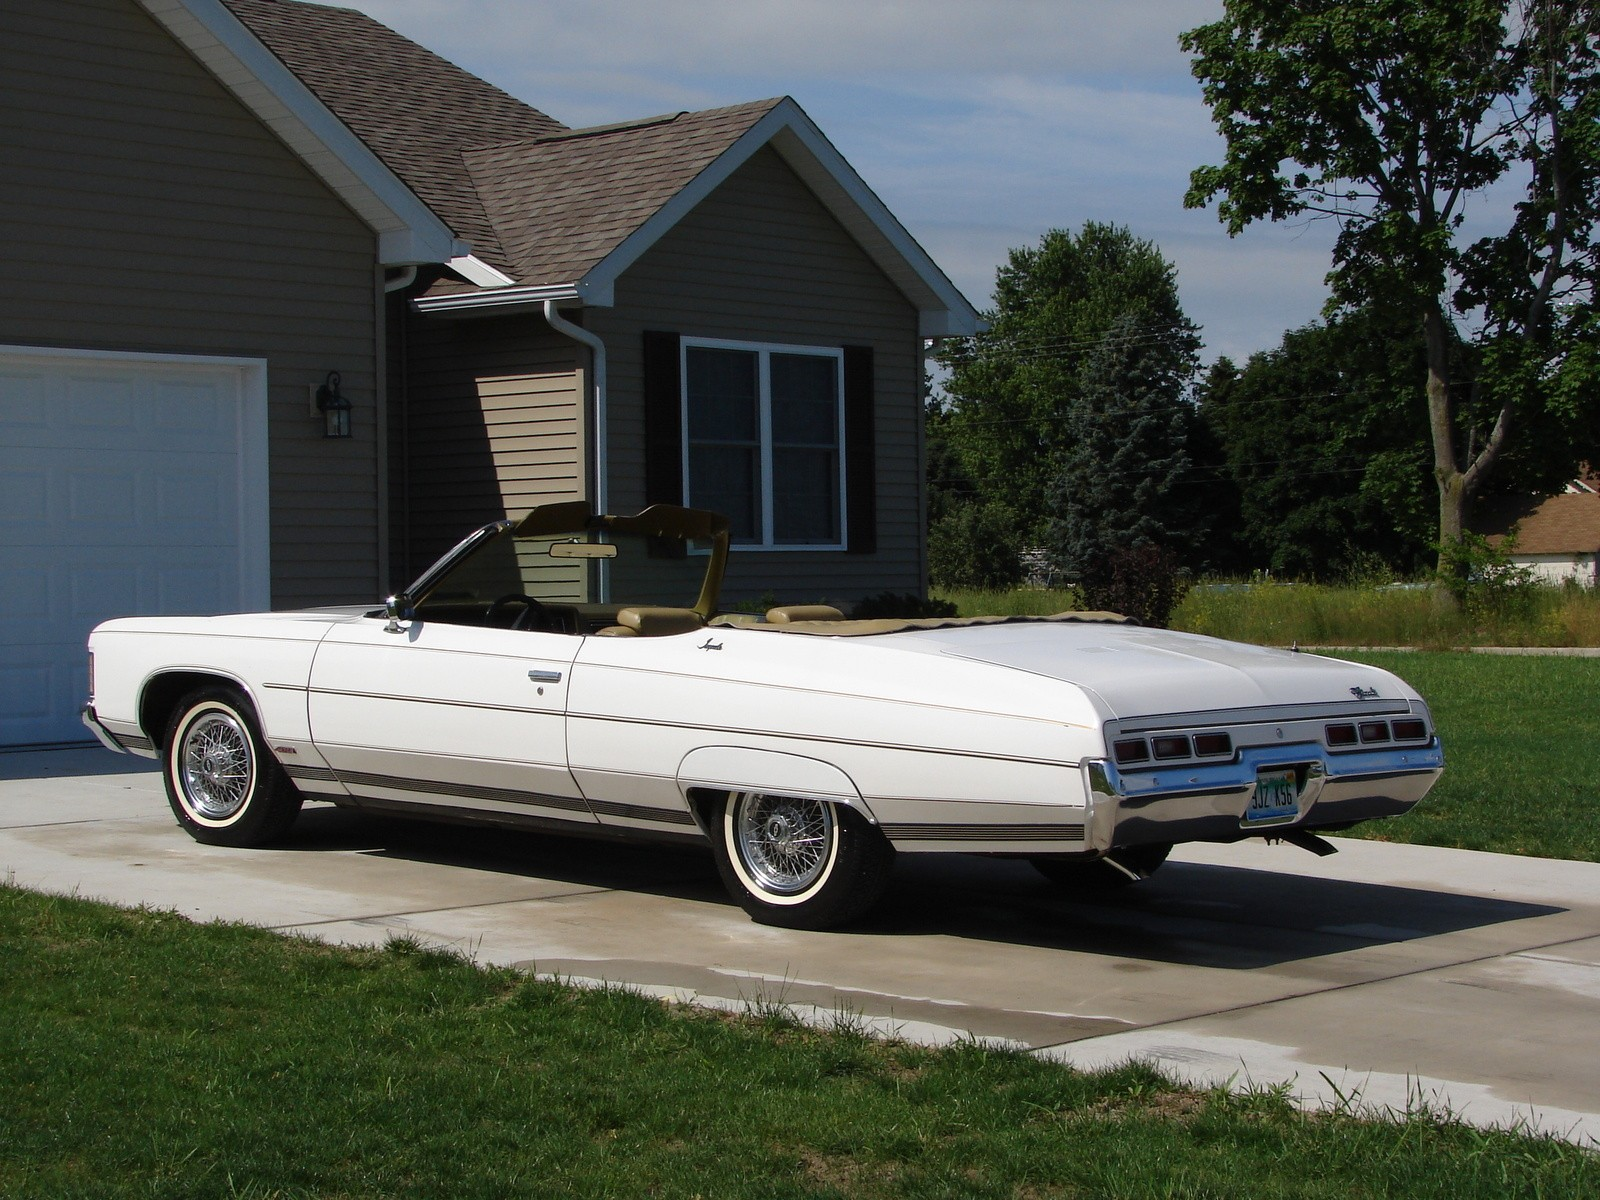 1975 Chevrolet Impala Convertible Top